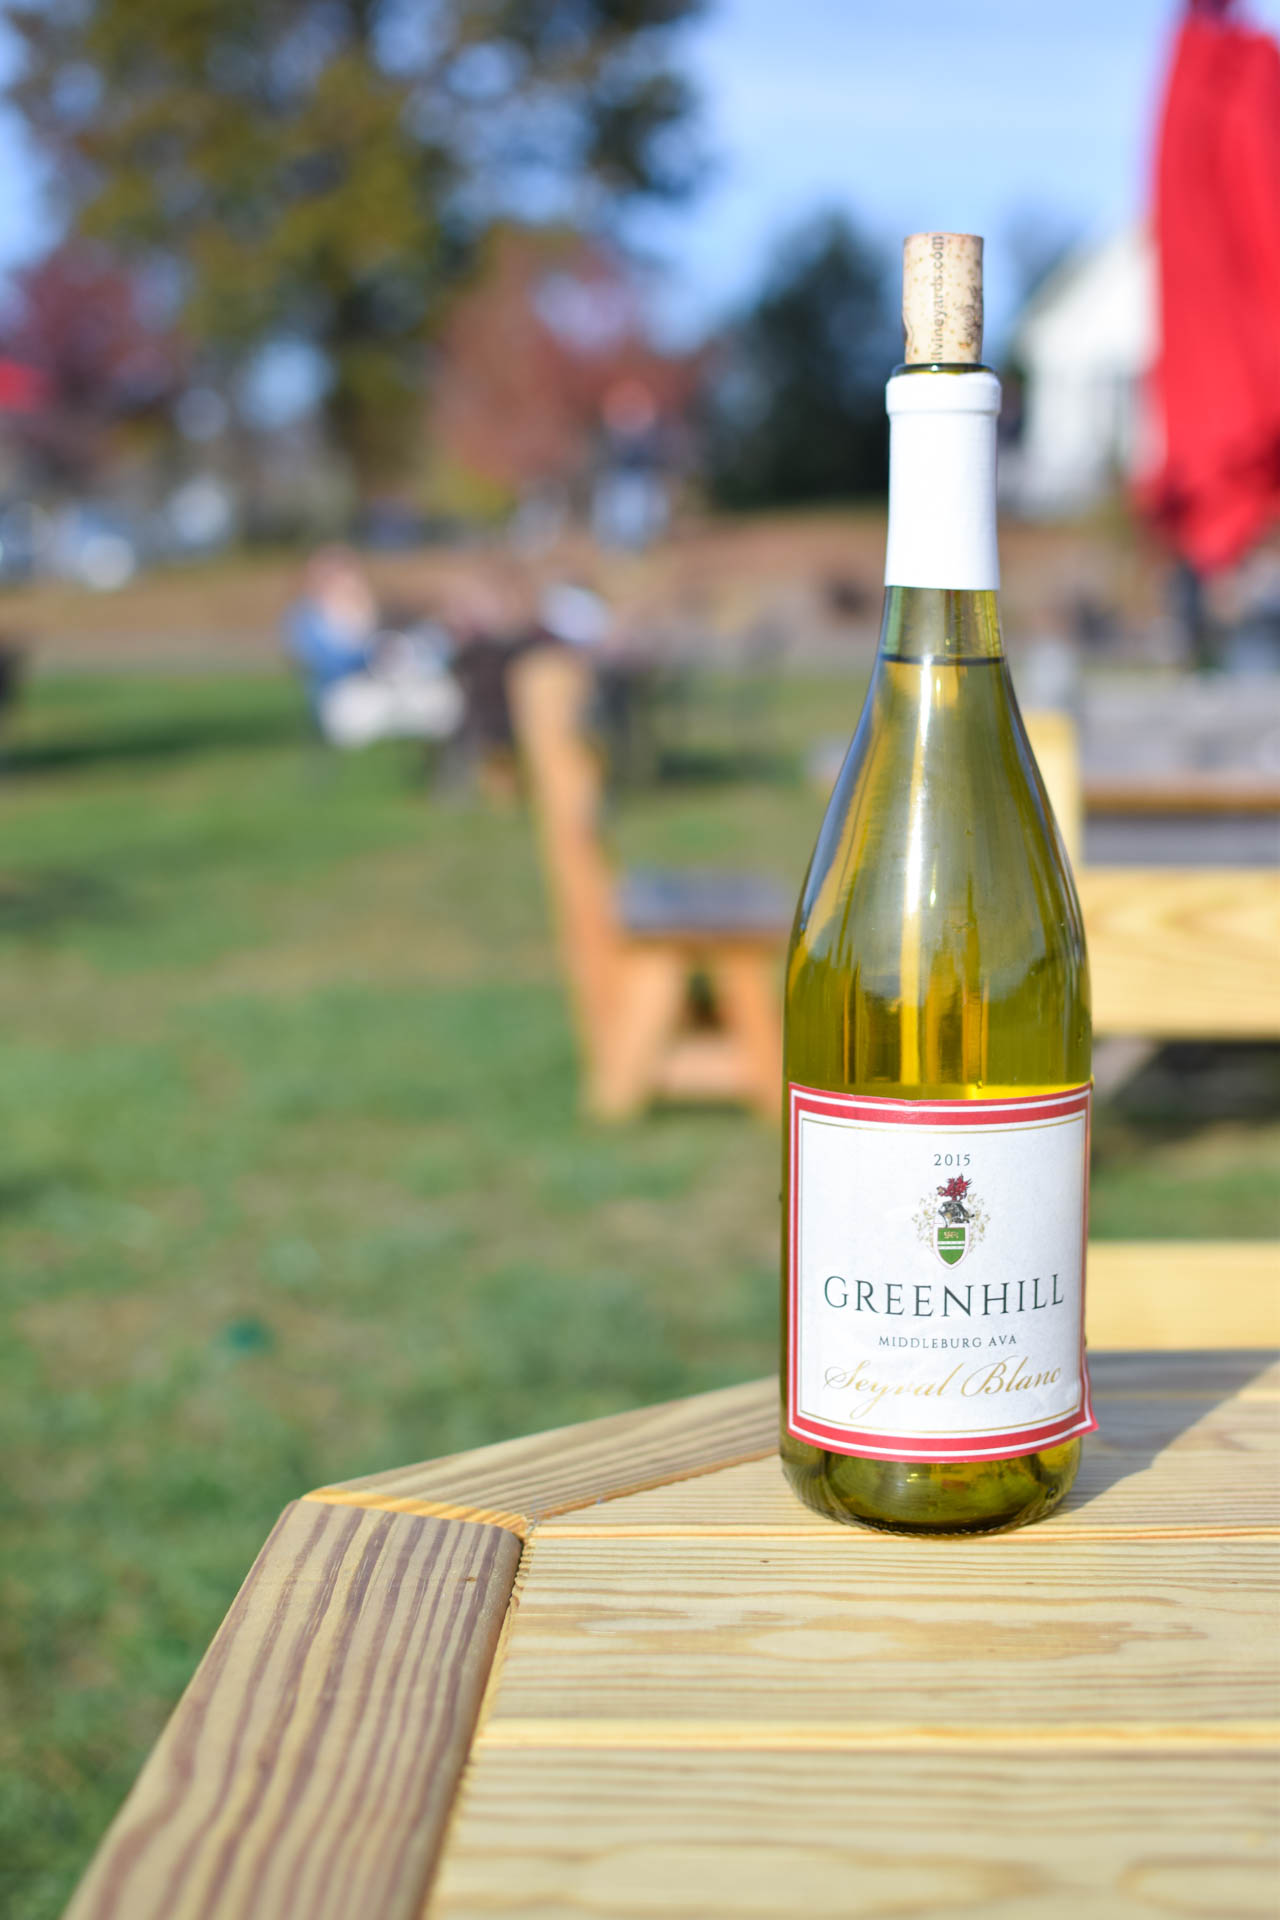 greenhill-winery-and-vineyards-review-6